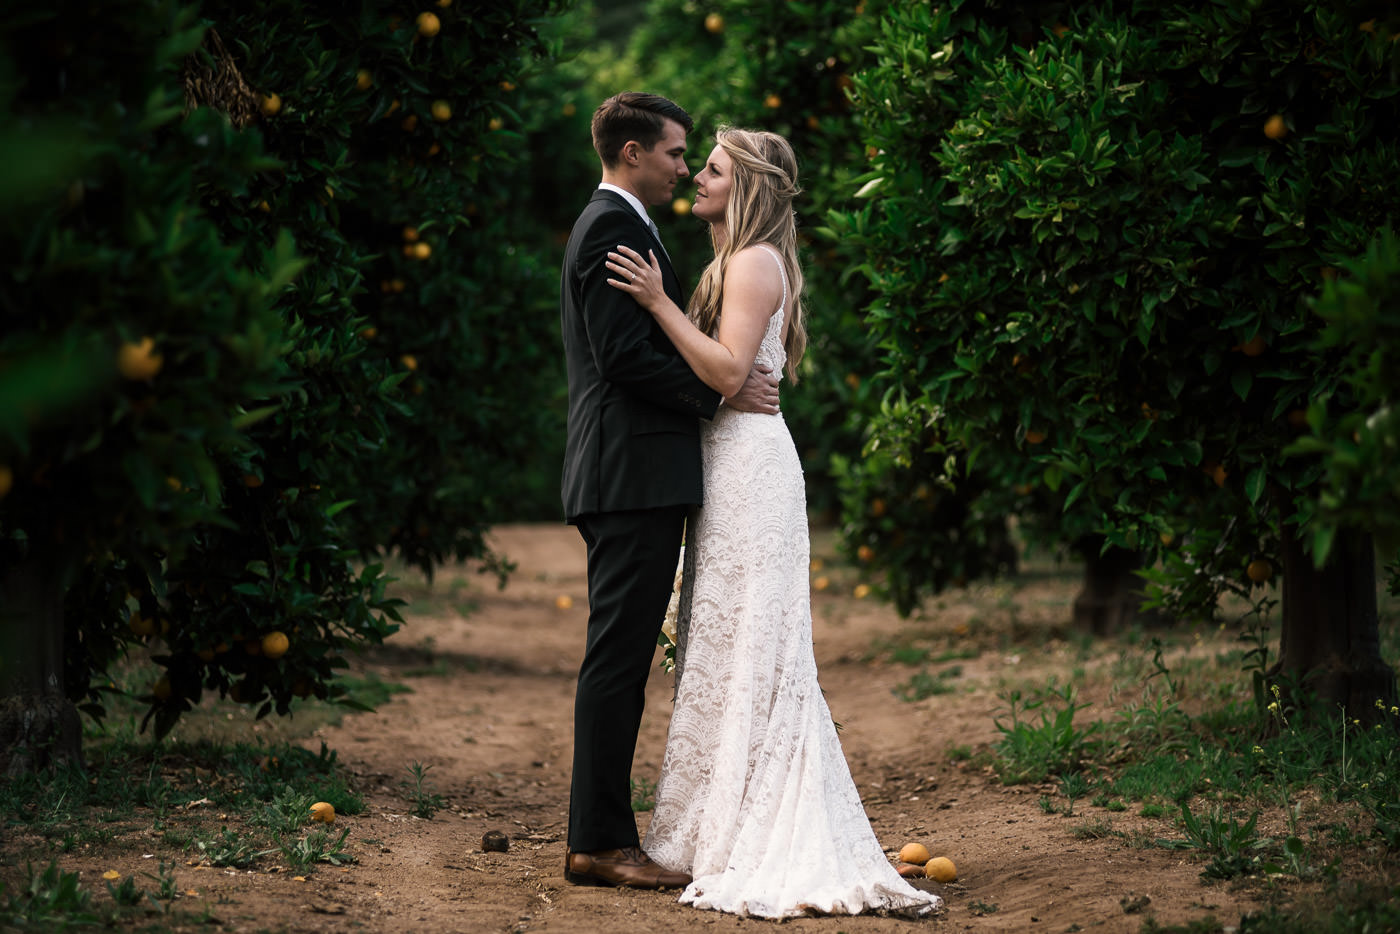 Couple stops for a little romance in the orchards of Temecula California. This romantic moment was captured by their wedding photographer.